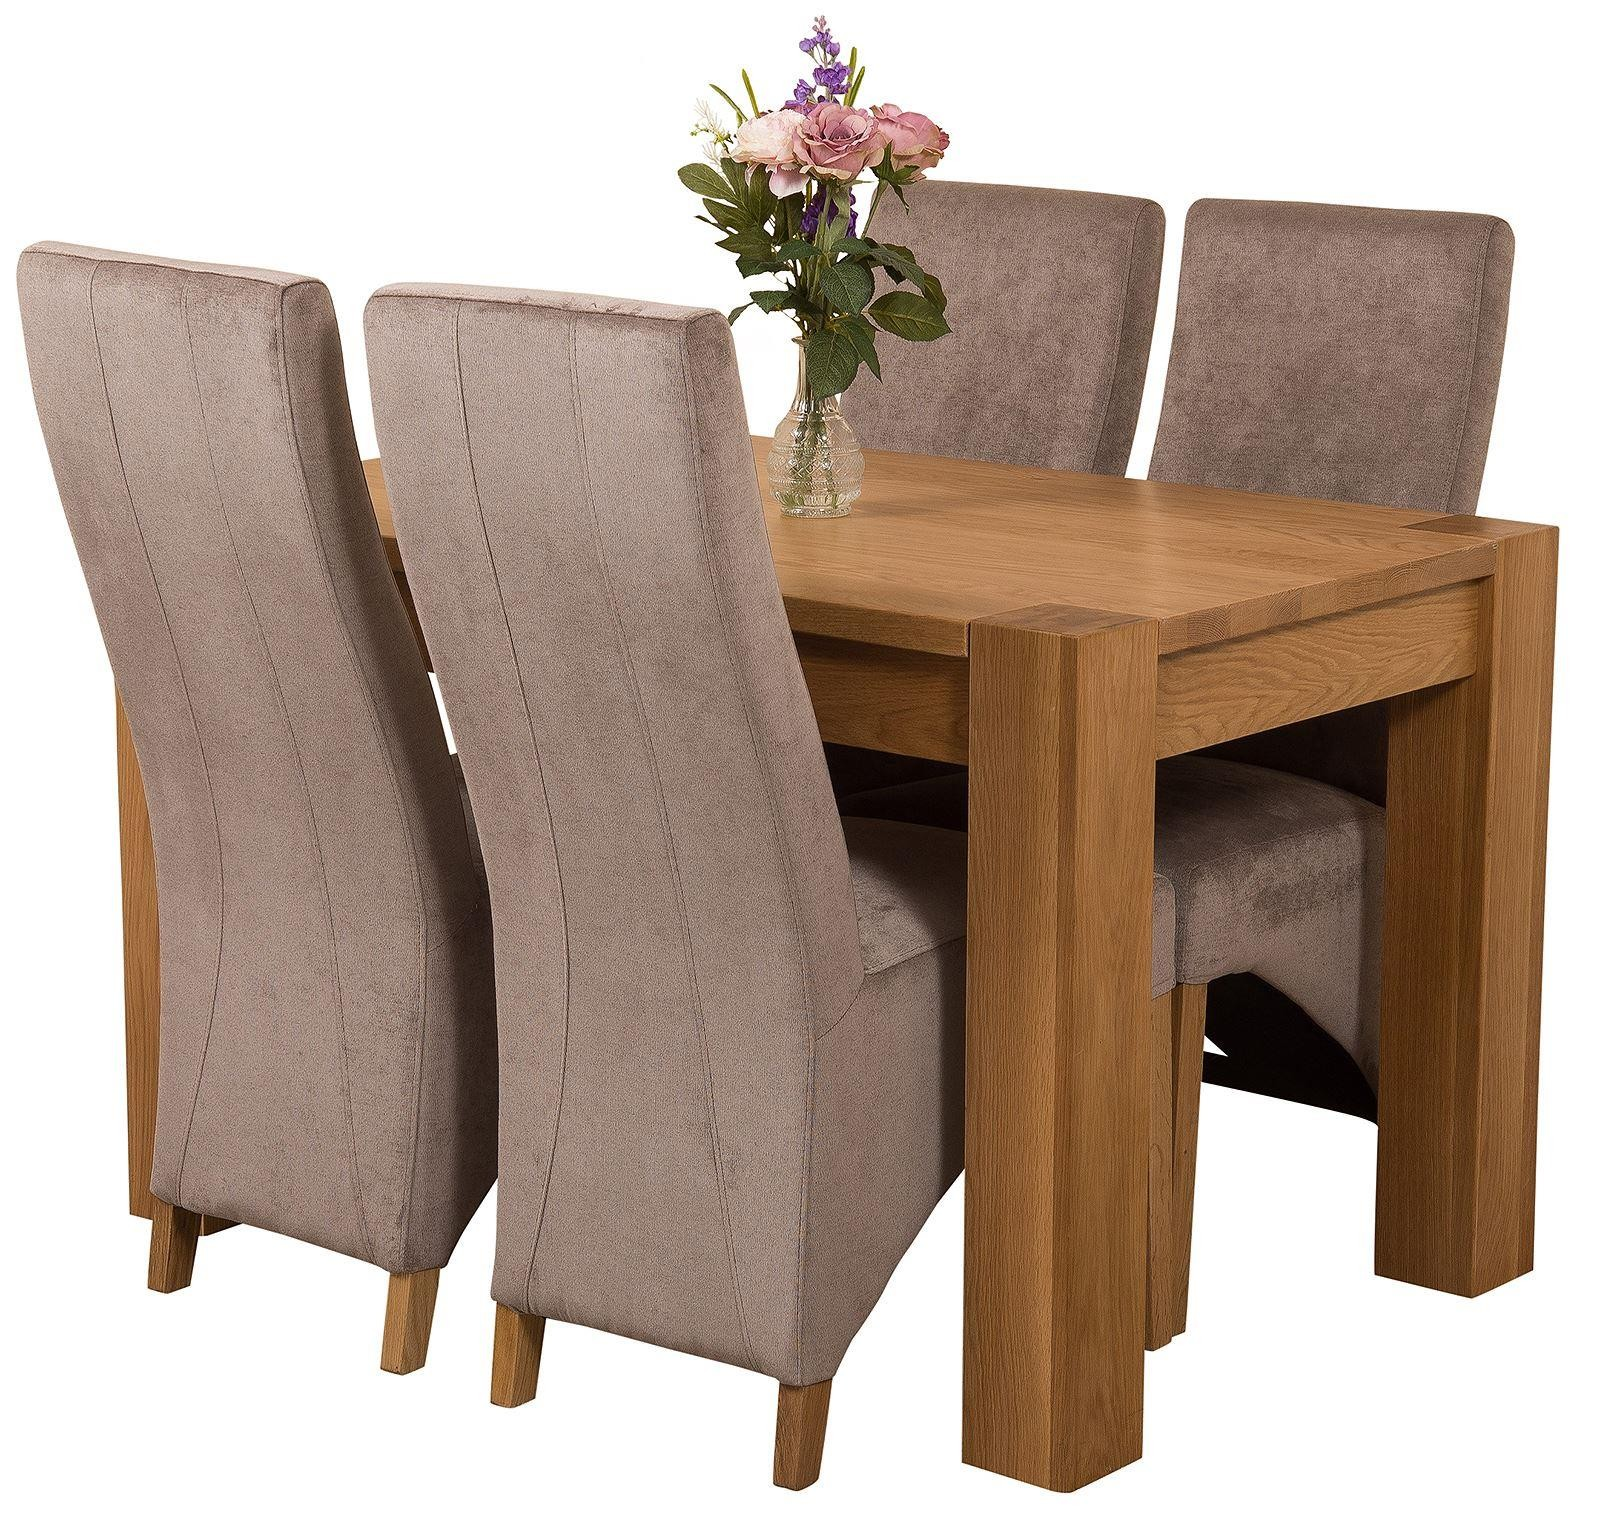 Kuba Solid Oak 125cm Dining Table with 4 Lola Dining Chairs [Grey Fabric]